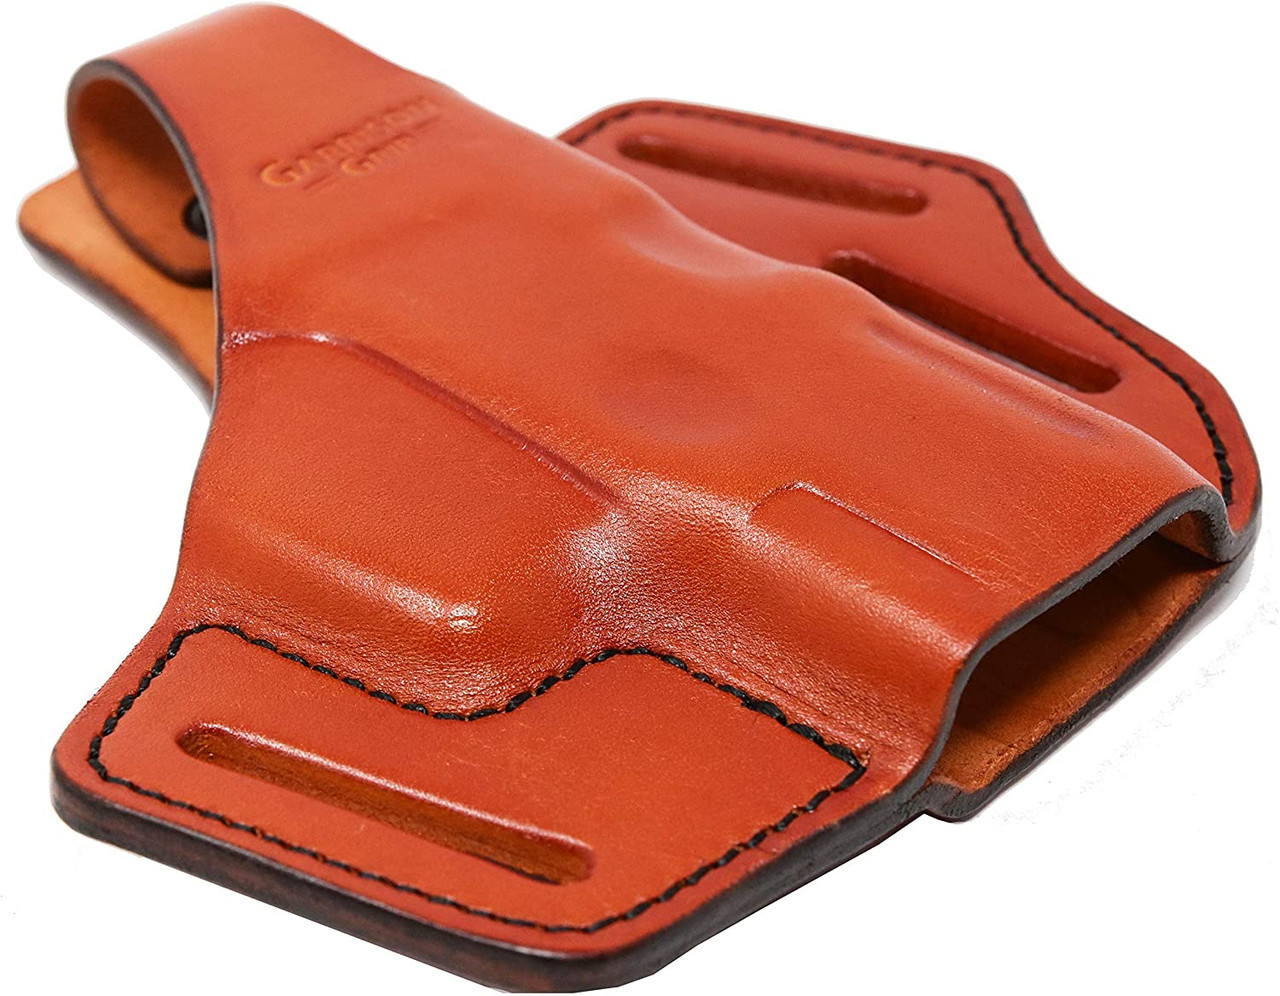 Garrison Grip Premium Full Grain Italian Leather 2 Position Tactical Holster Fits Springfield XDs 45 (Tan)